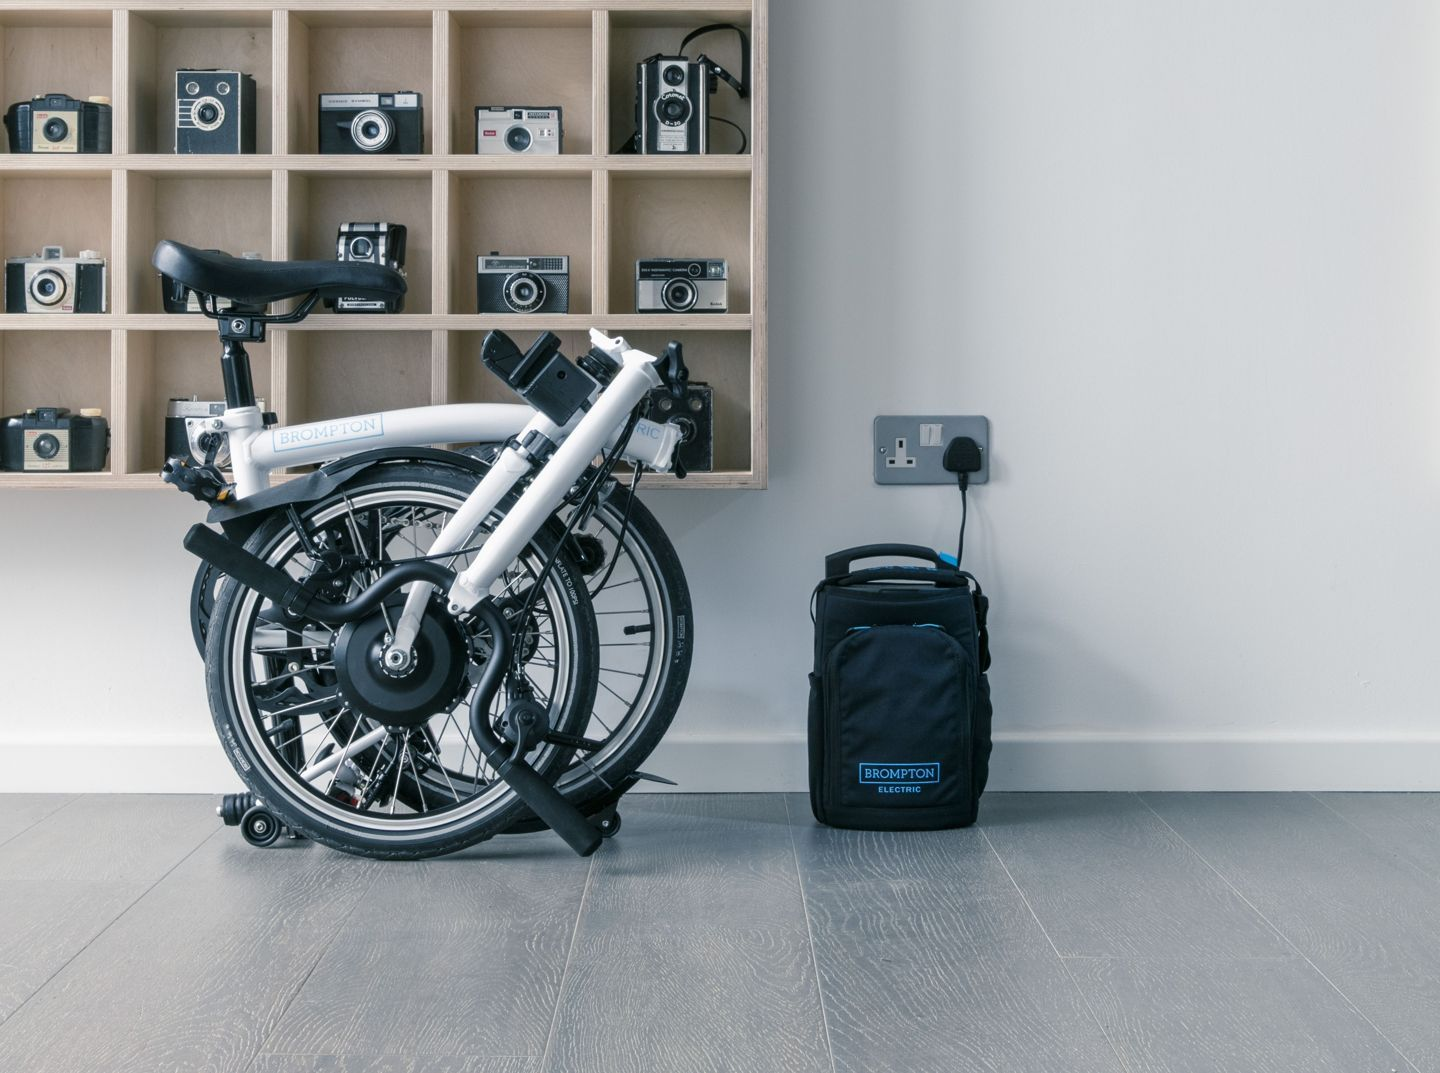 The Best Folding Electric Bikes To Make Your Commute More Bearable